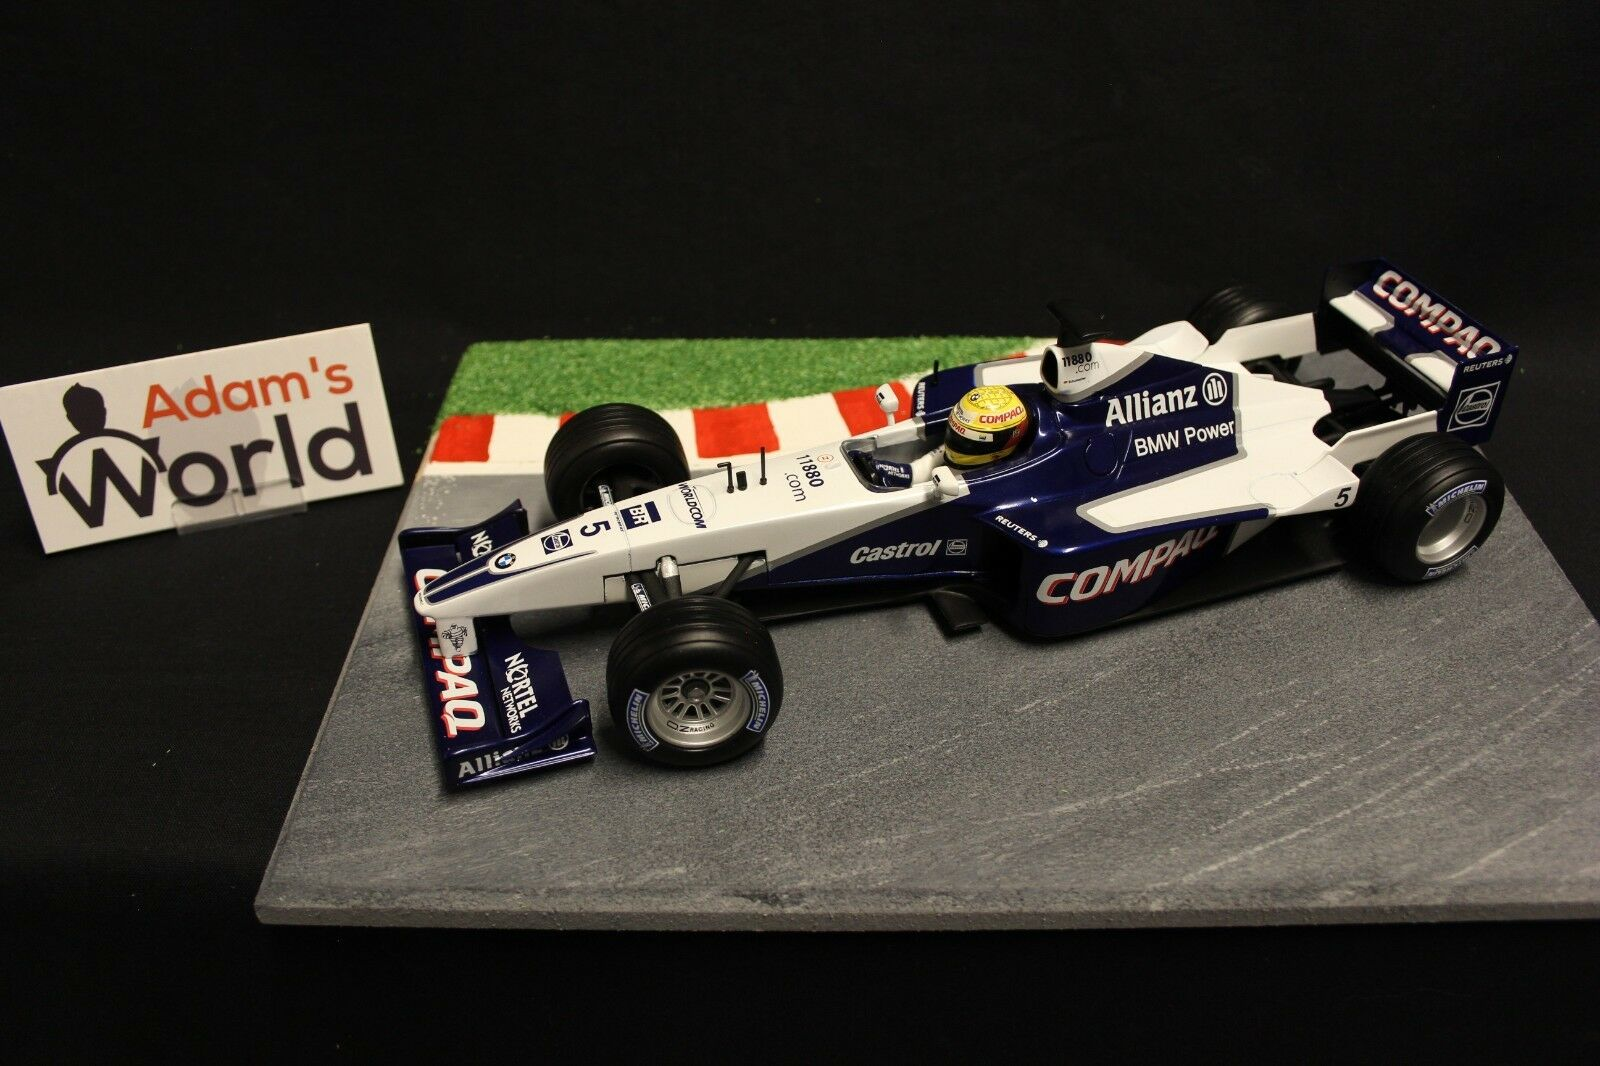 Hot Wheels Williams BMW show car 2001 1 18  5 Ralf Schumacher (GER) (F1NB)